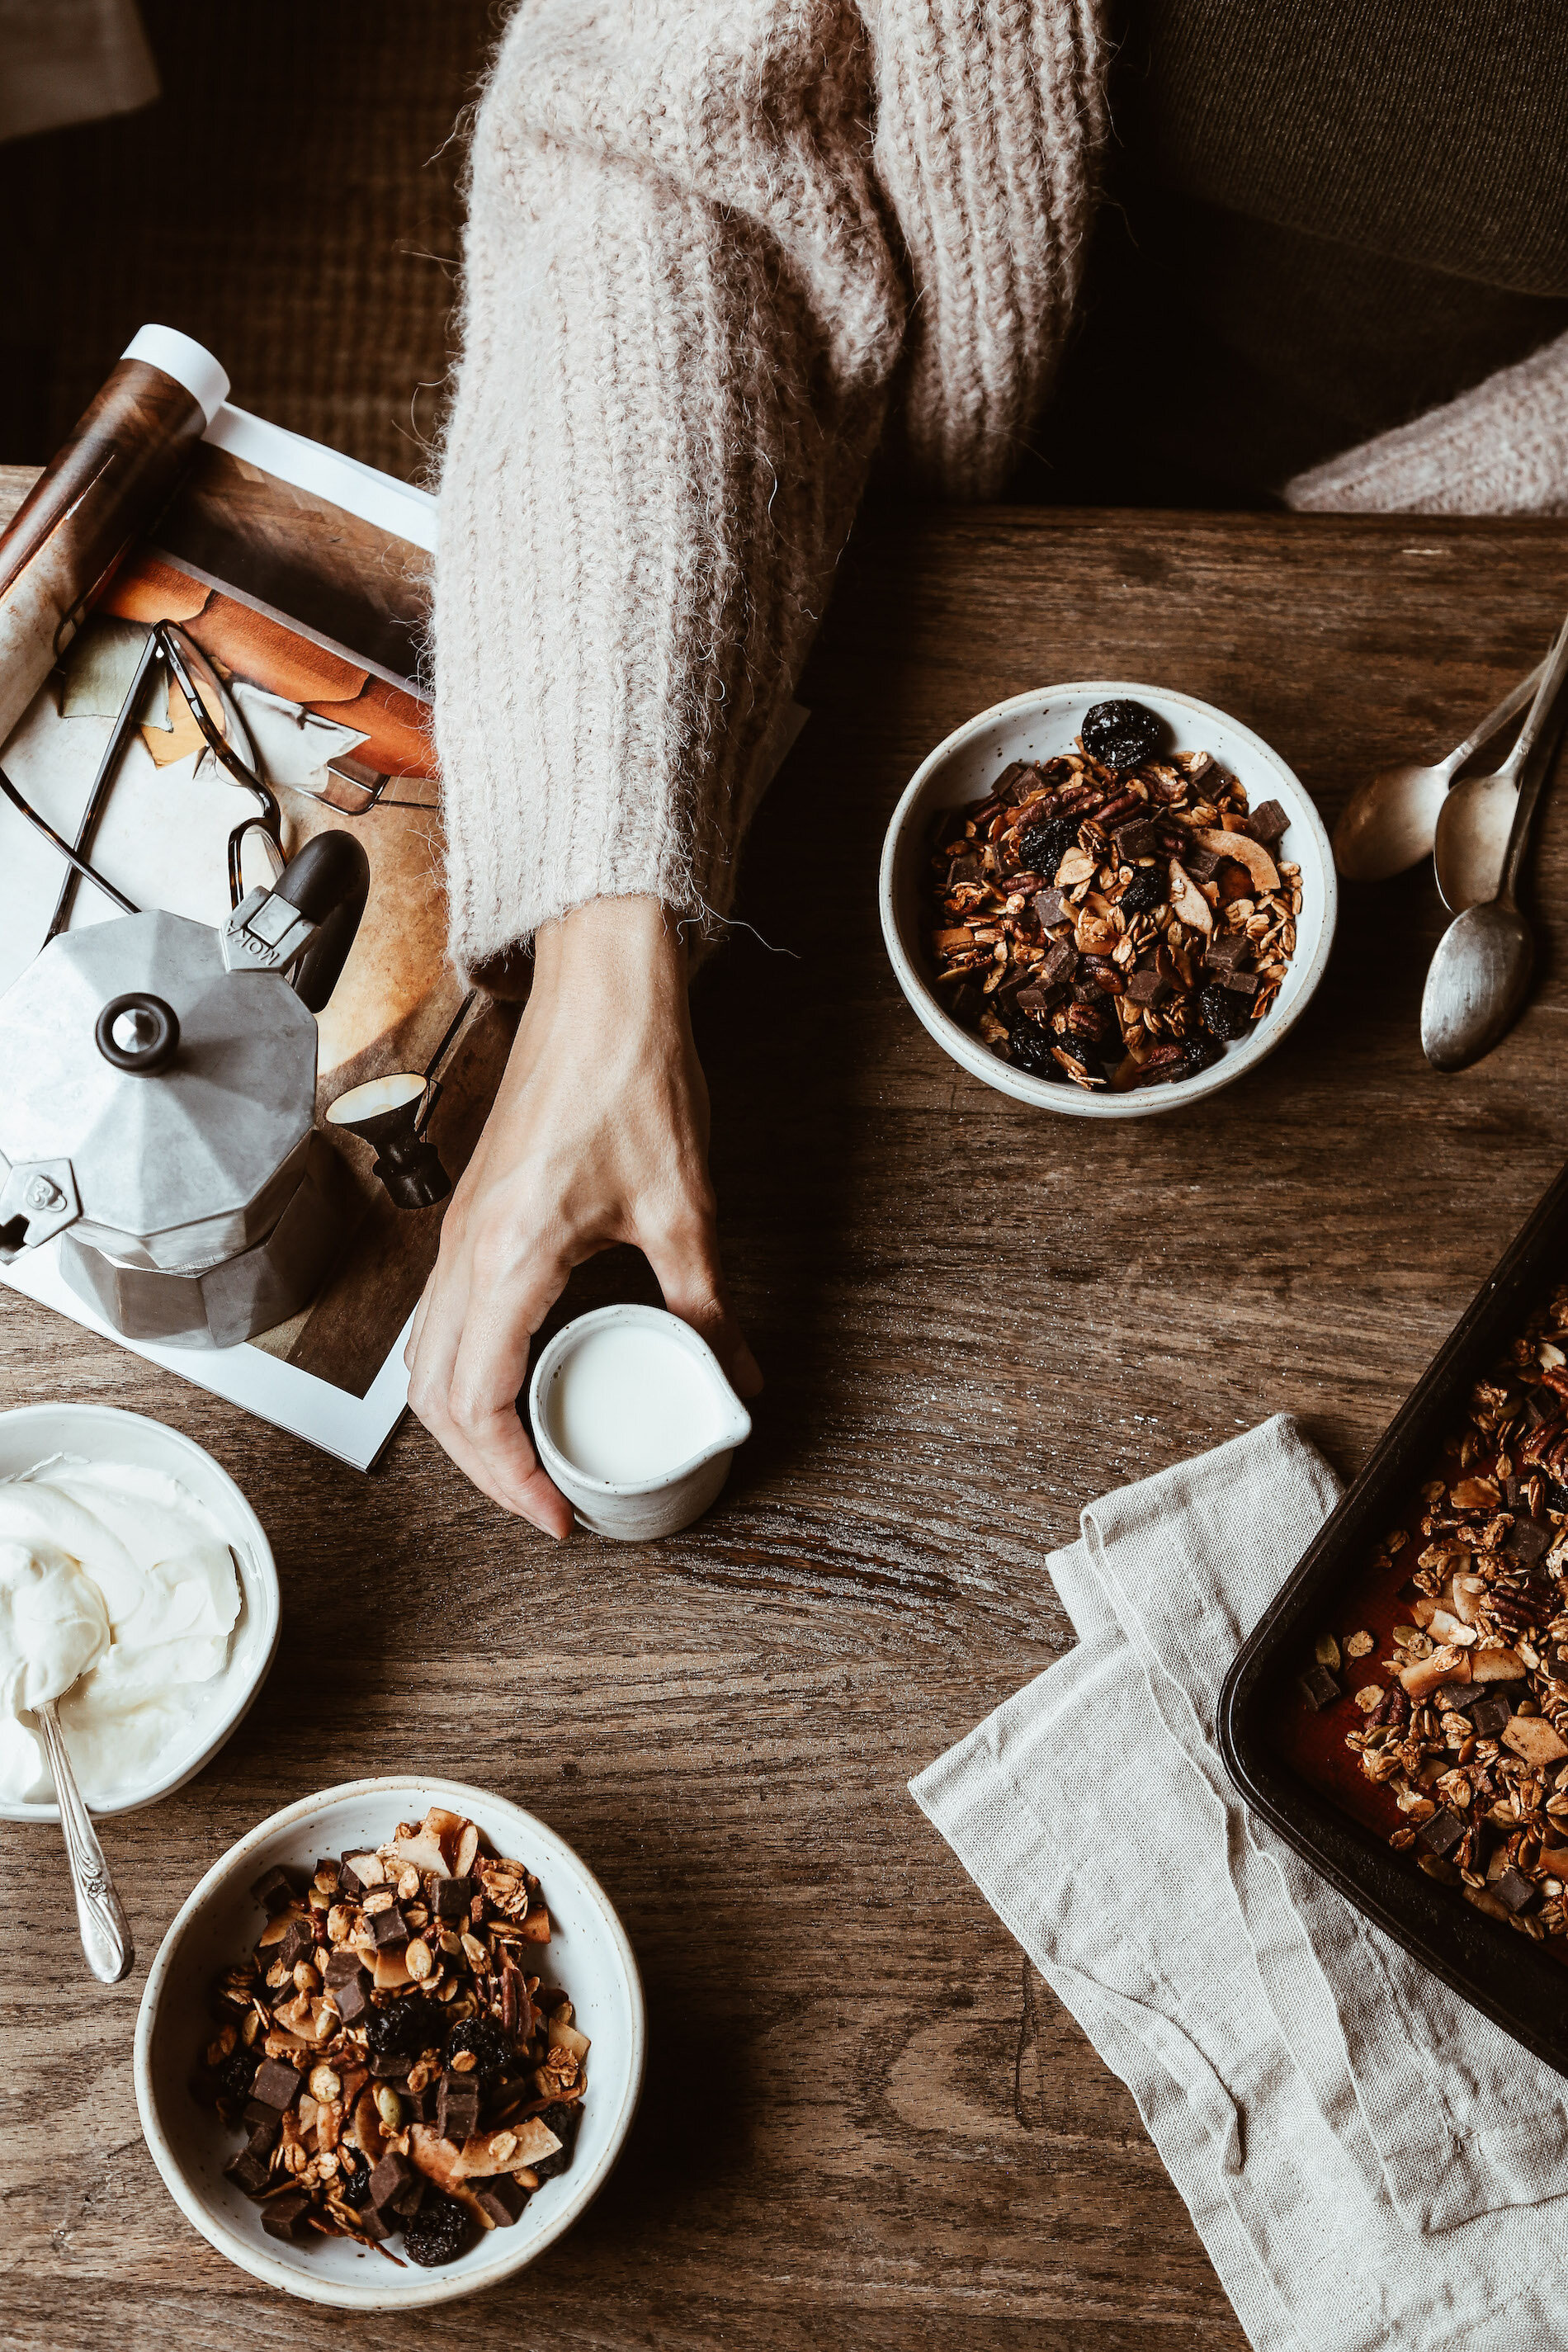 Recipe for Chocolate Coconut Granola with Cherries and Pecans